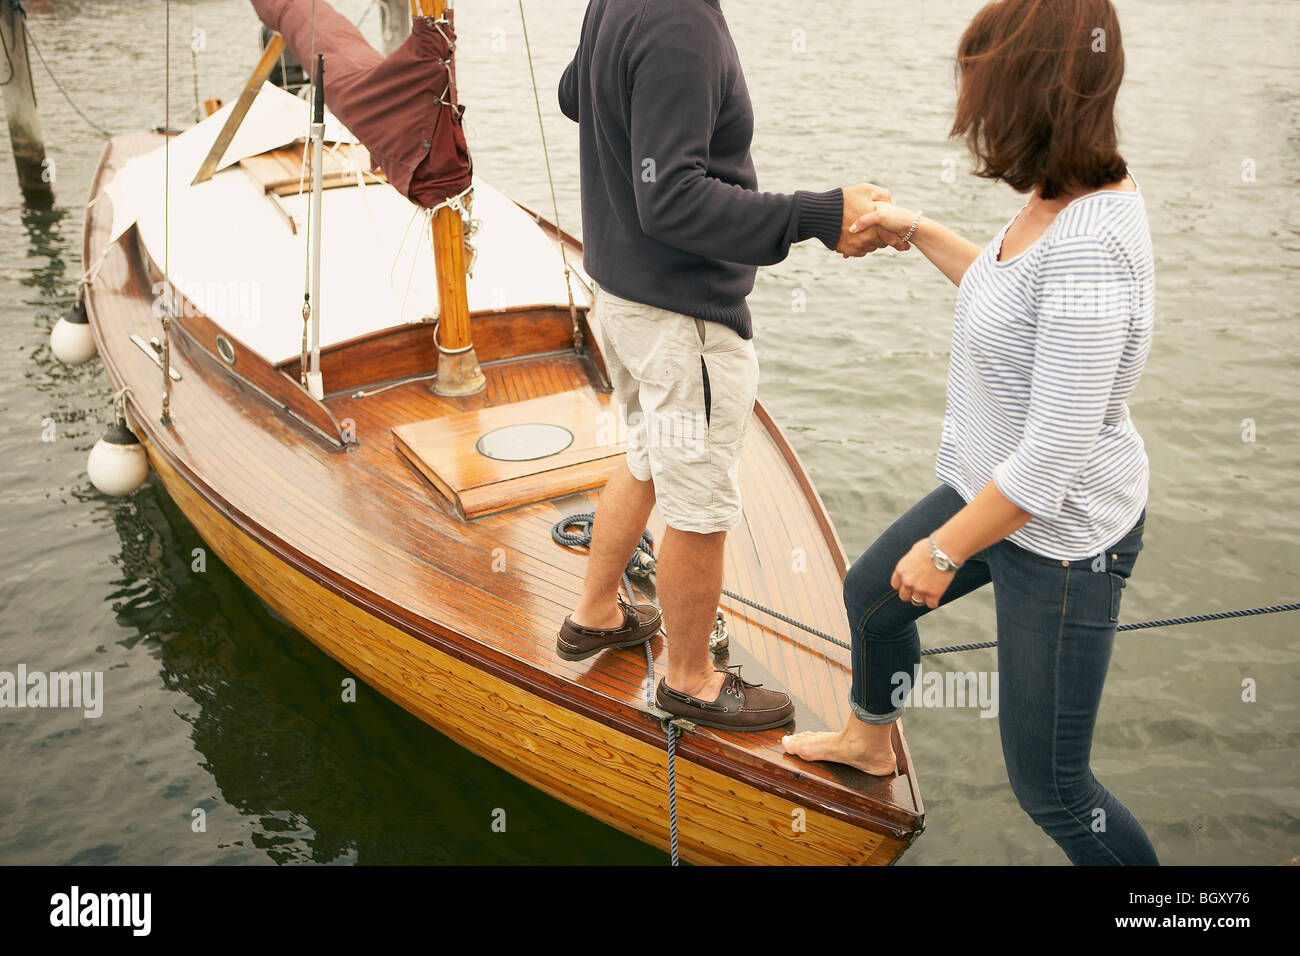 Man helping woman onto old boat - Stock Image